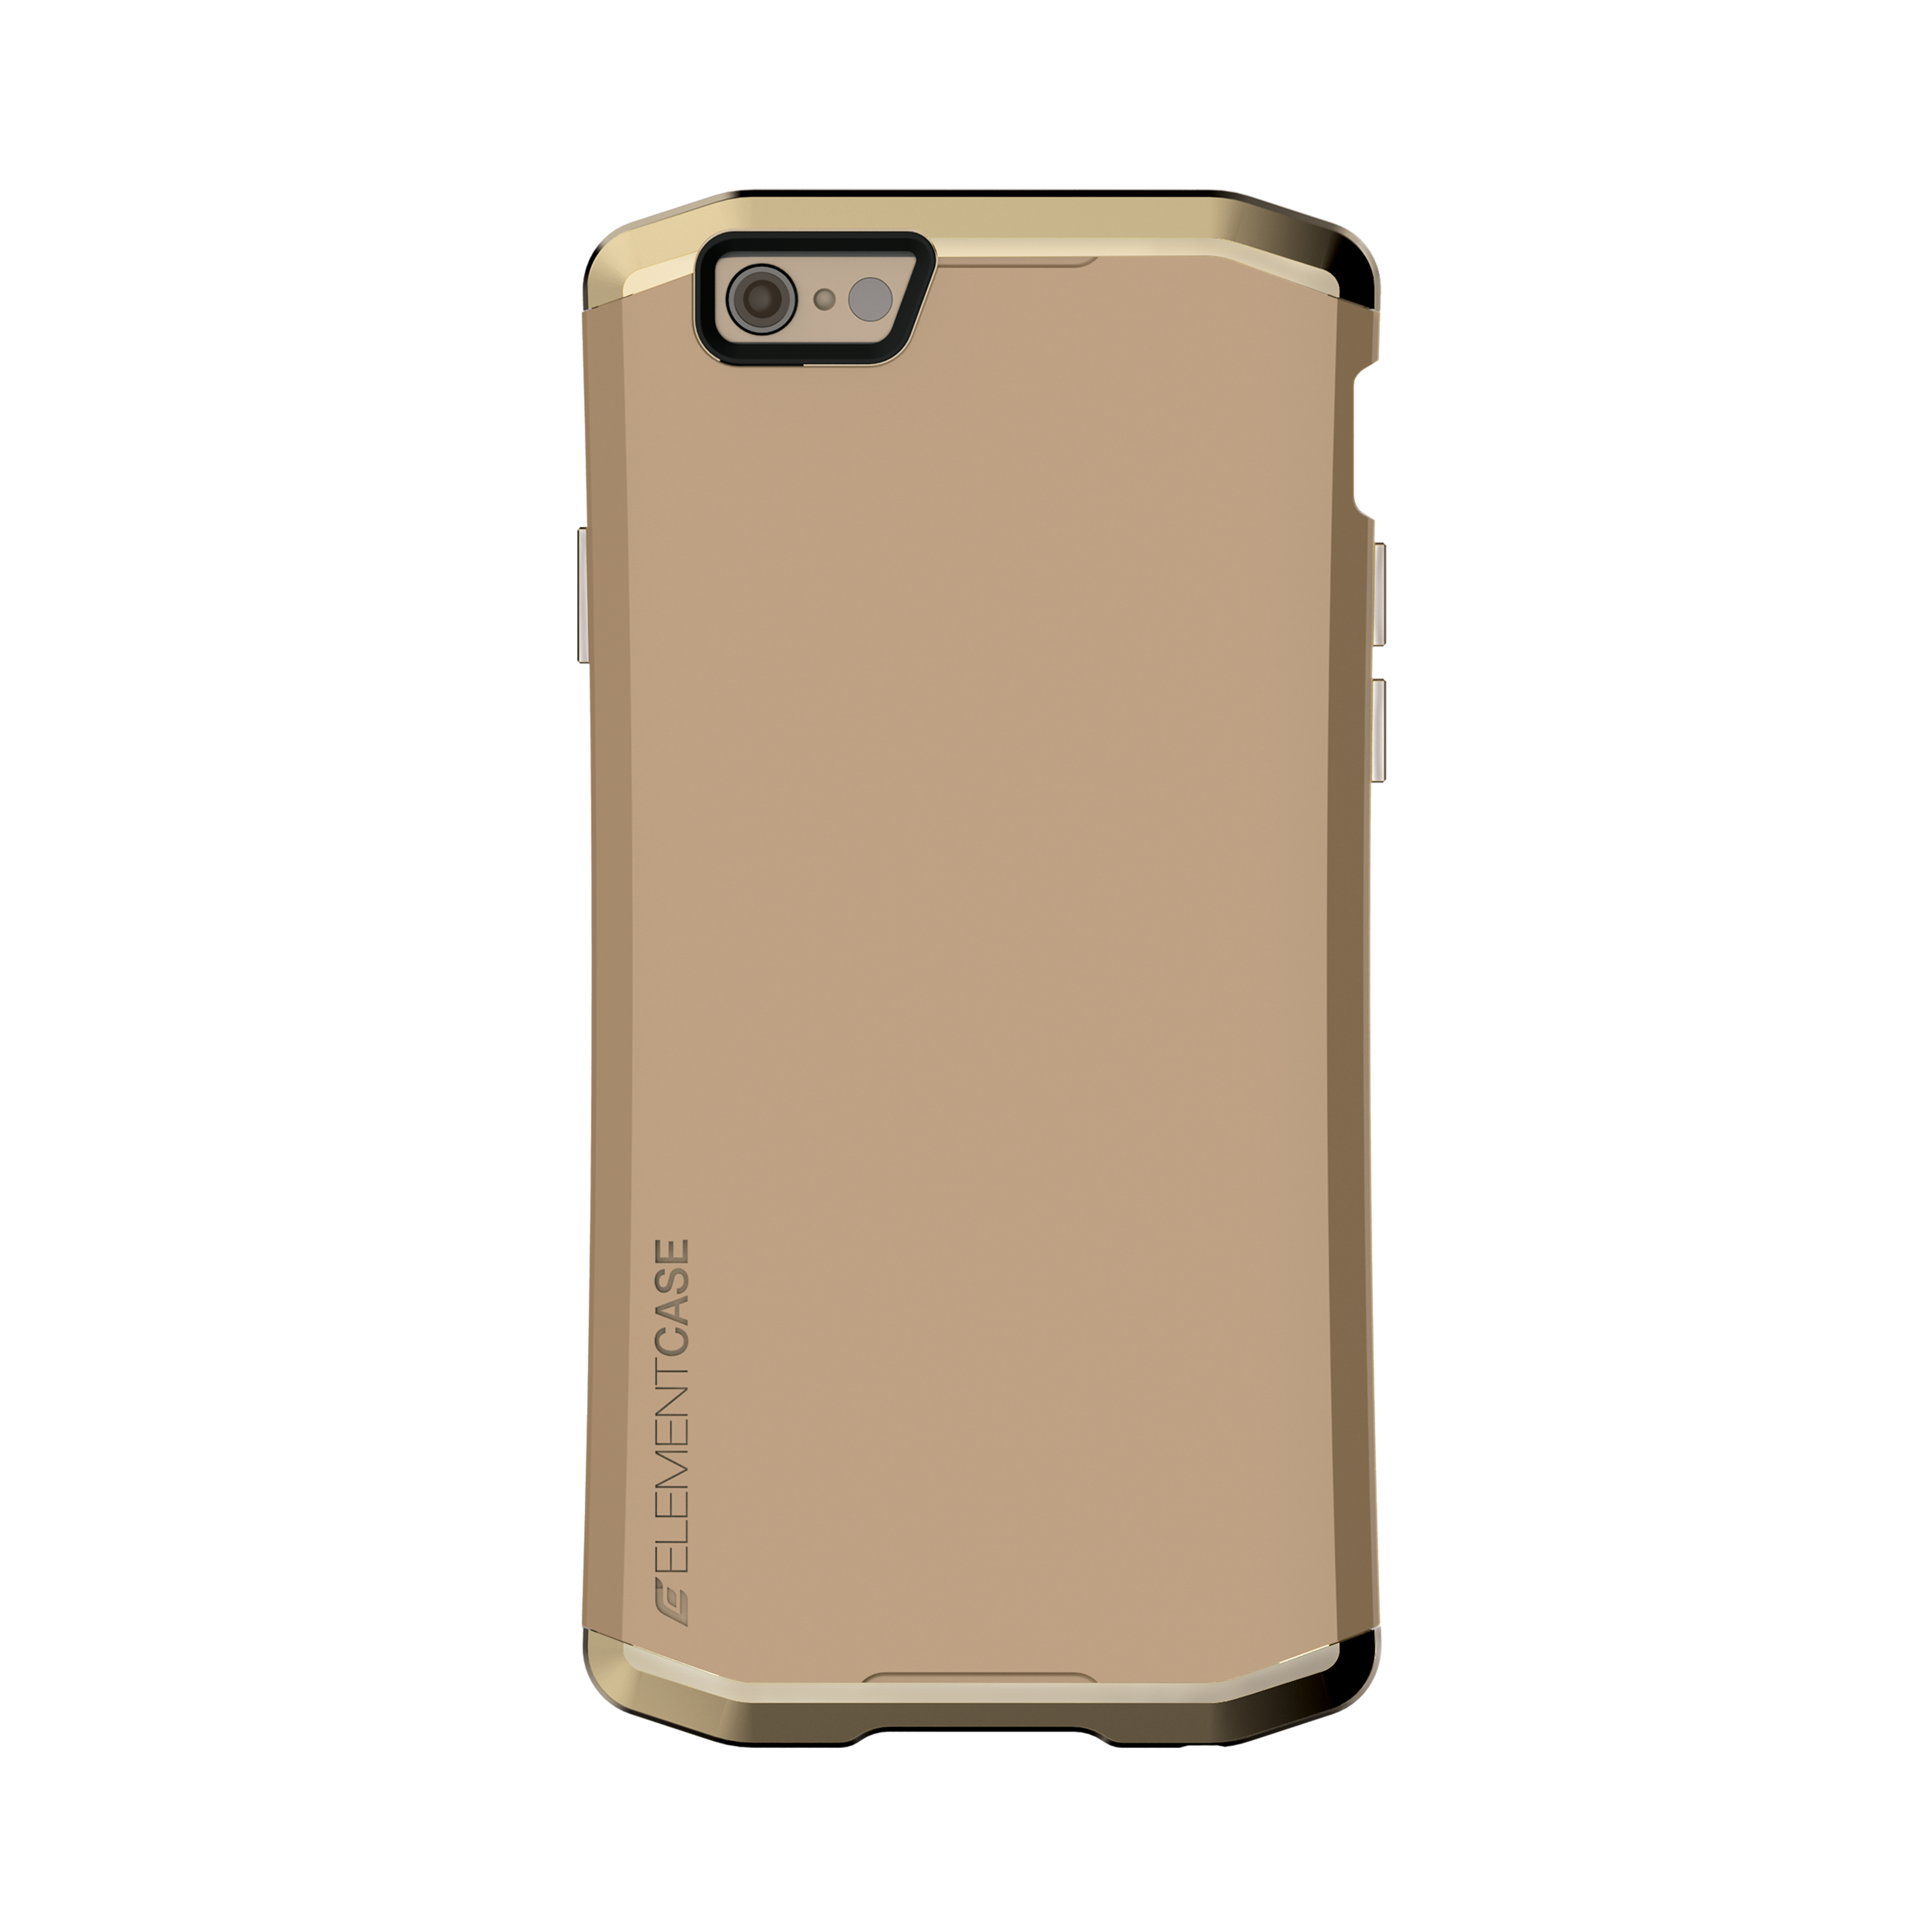 Billede af Element Case Solace (Chroma) II for iPhone 6/6s gold colored